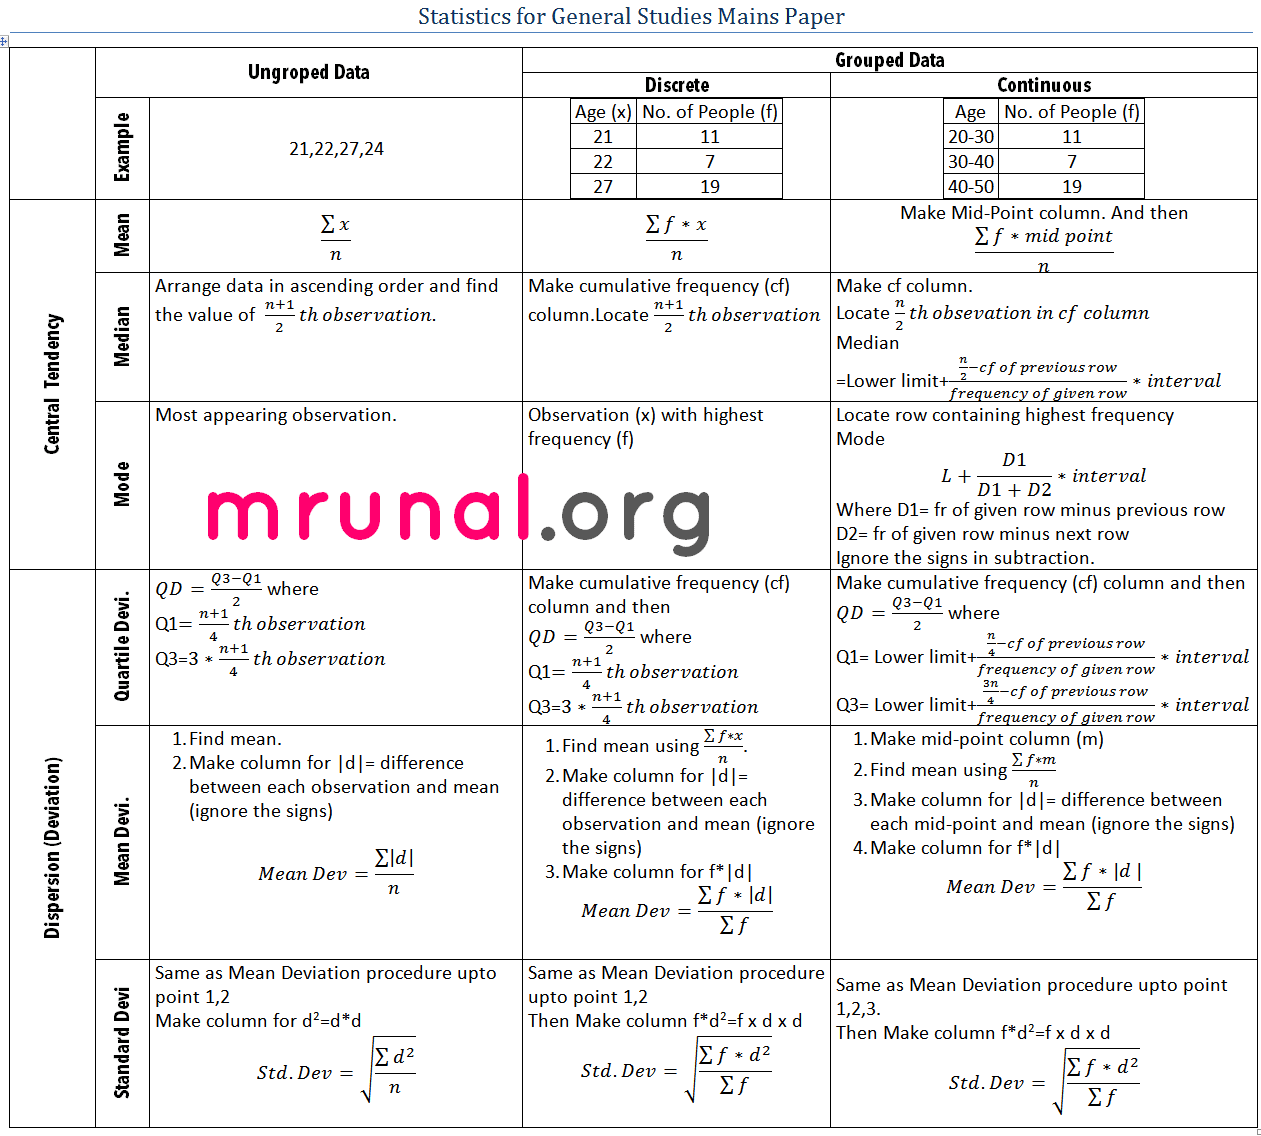 Worksheets Formula Of Statistics Mean Mode Median formula of statistics mean mode median virallyapp printables worksheets for gs ungrouped data modeqdmd and